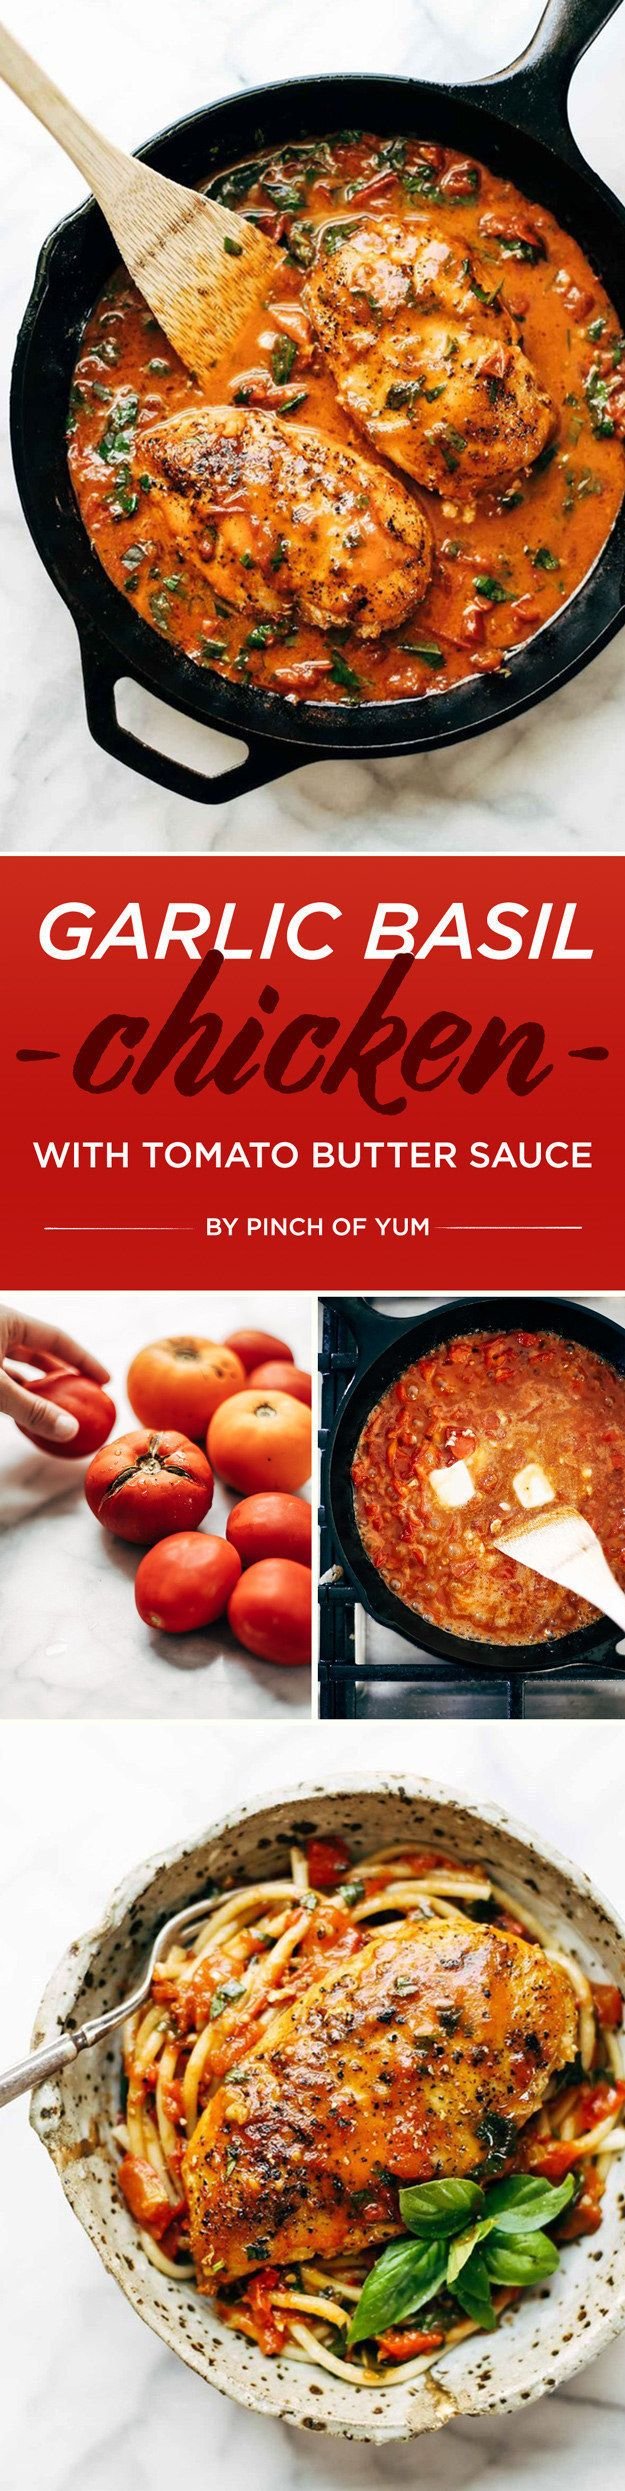 Garlic Basil Chicken with Tomato Butter Sauce | 21 Genius Reasons To Cook Chicken For Dinner Tonight